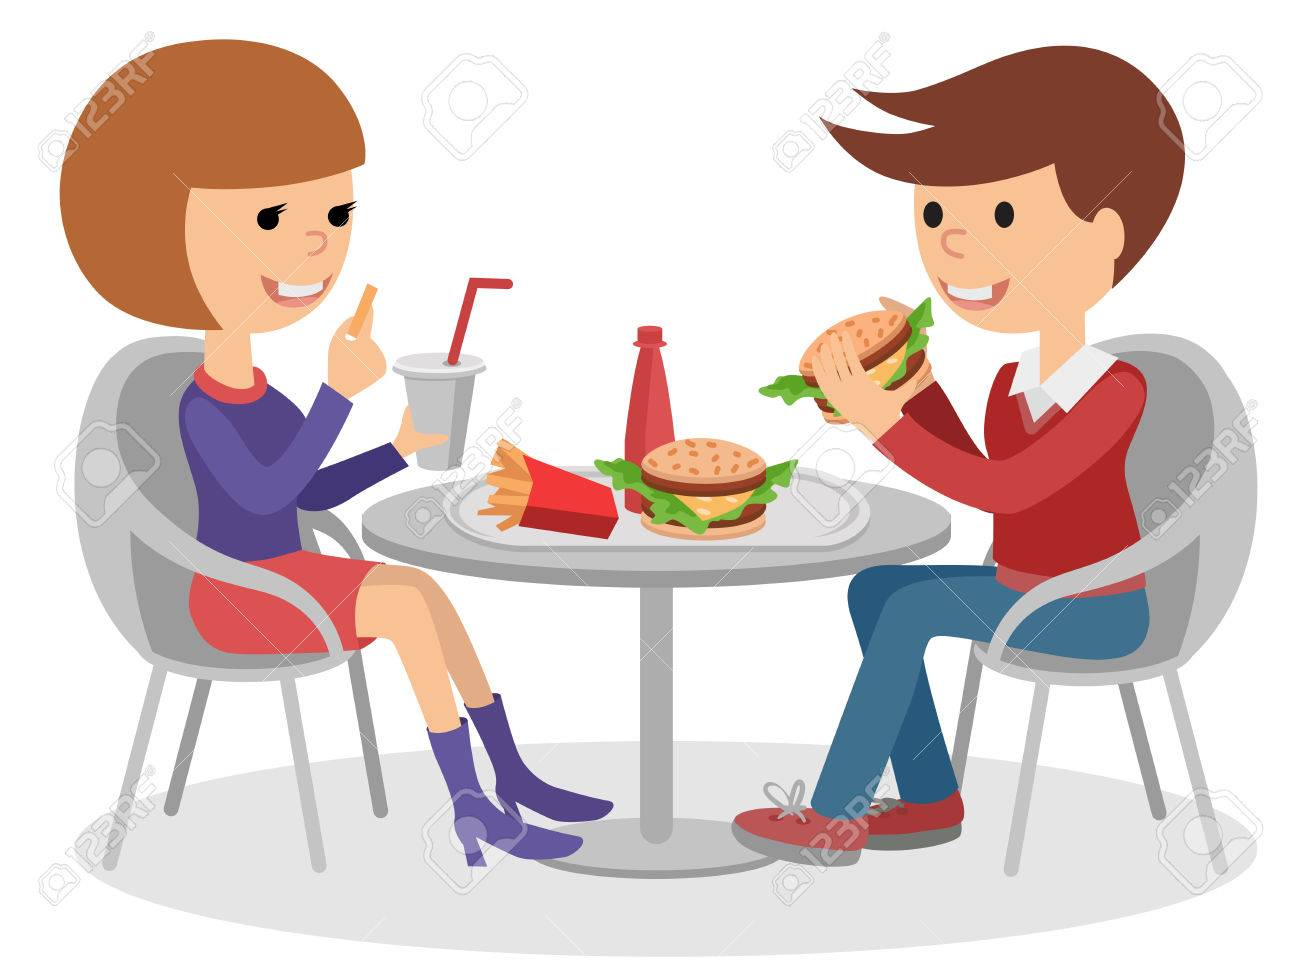 Girl And Boy Eating Fast Food Vector Illustration Of A People At Table With Sandwiches